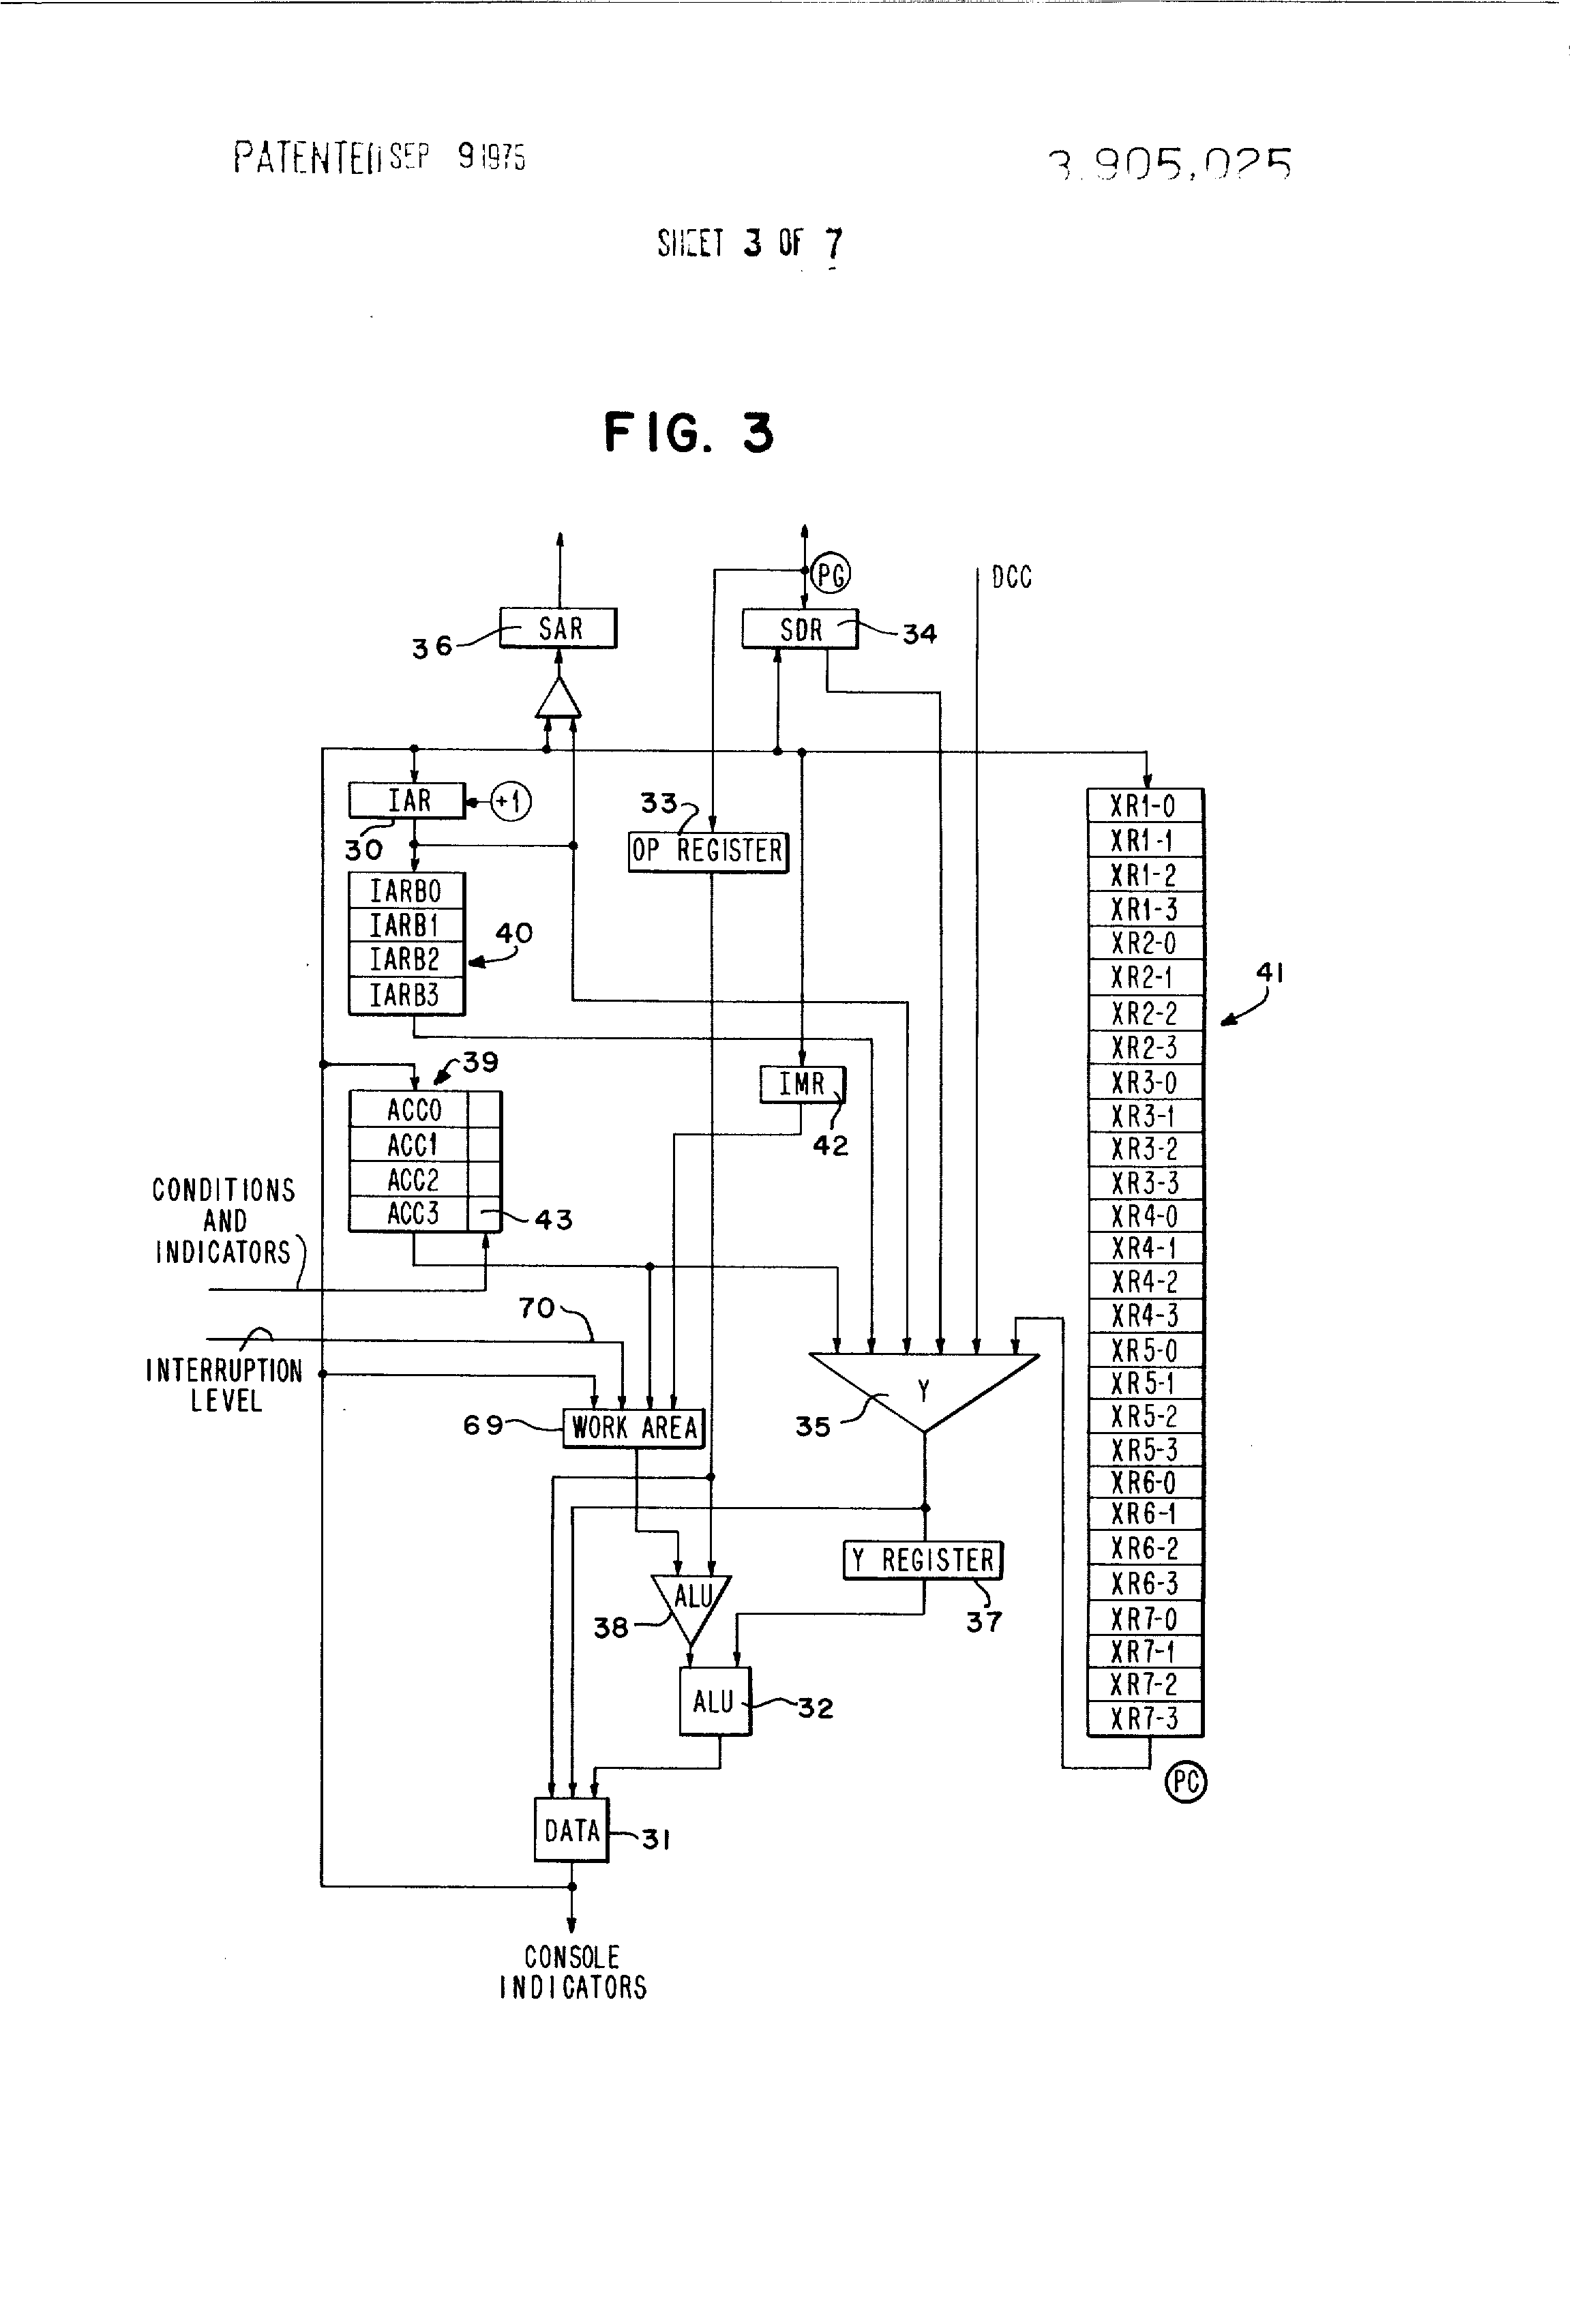 Capability Data Acquisition System : Patent us data acquisition and control system